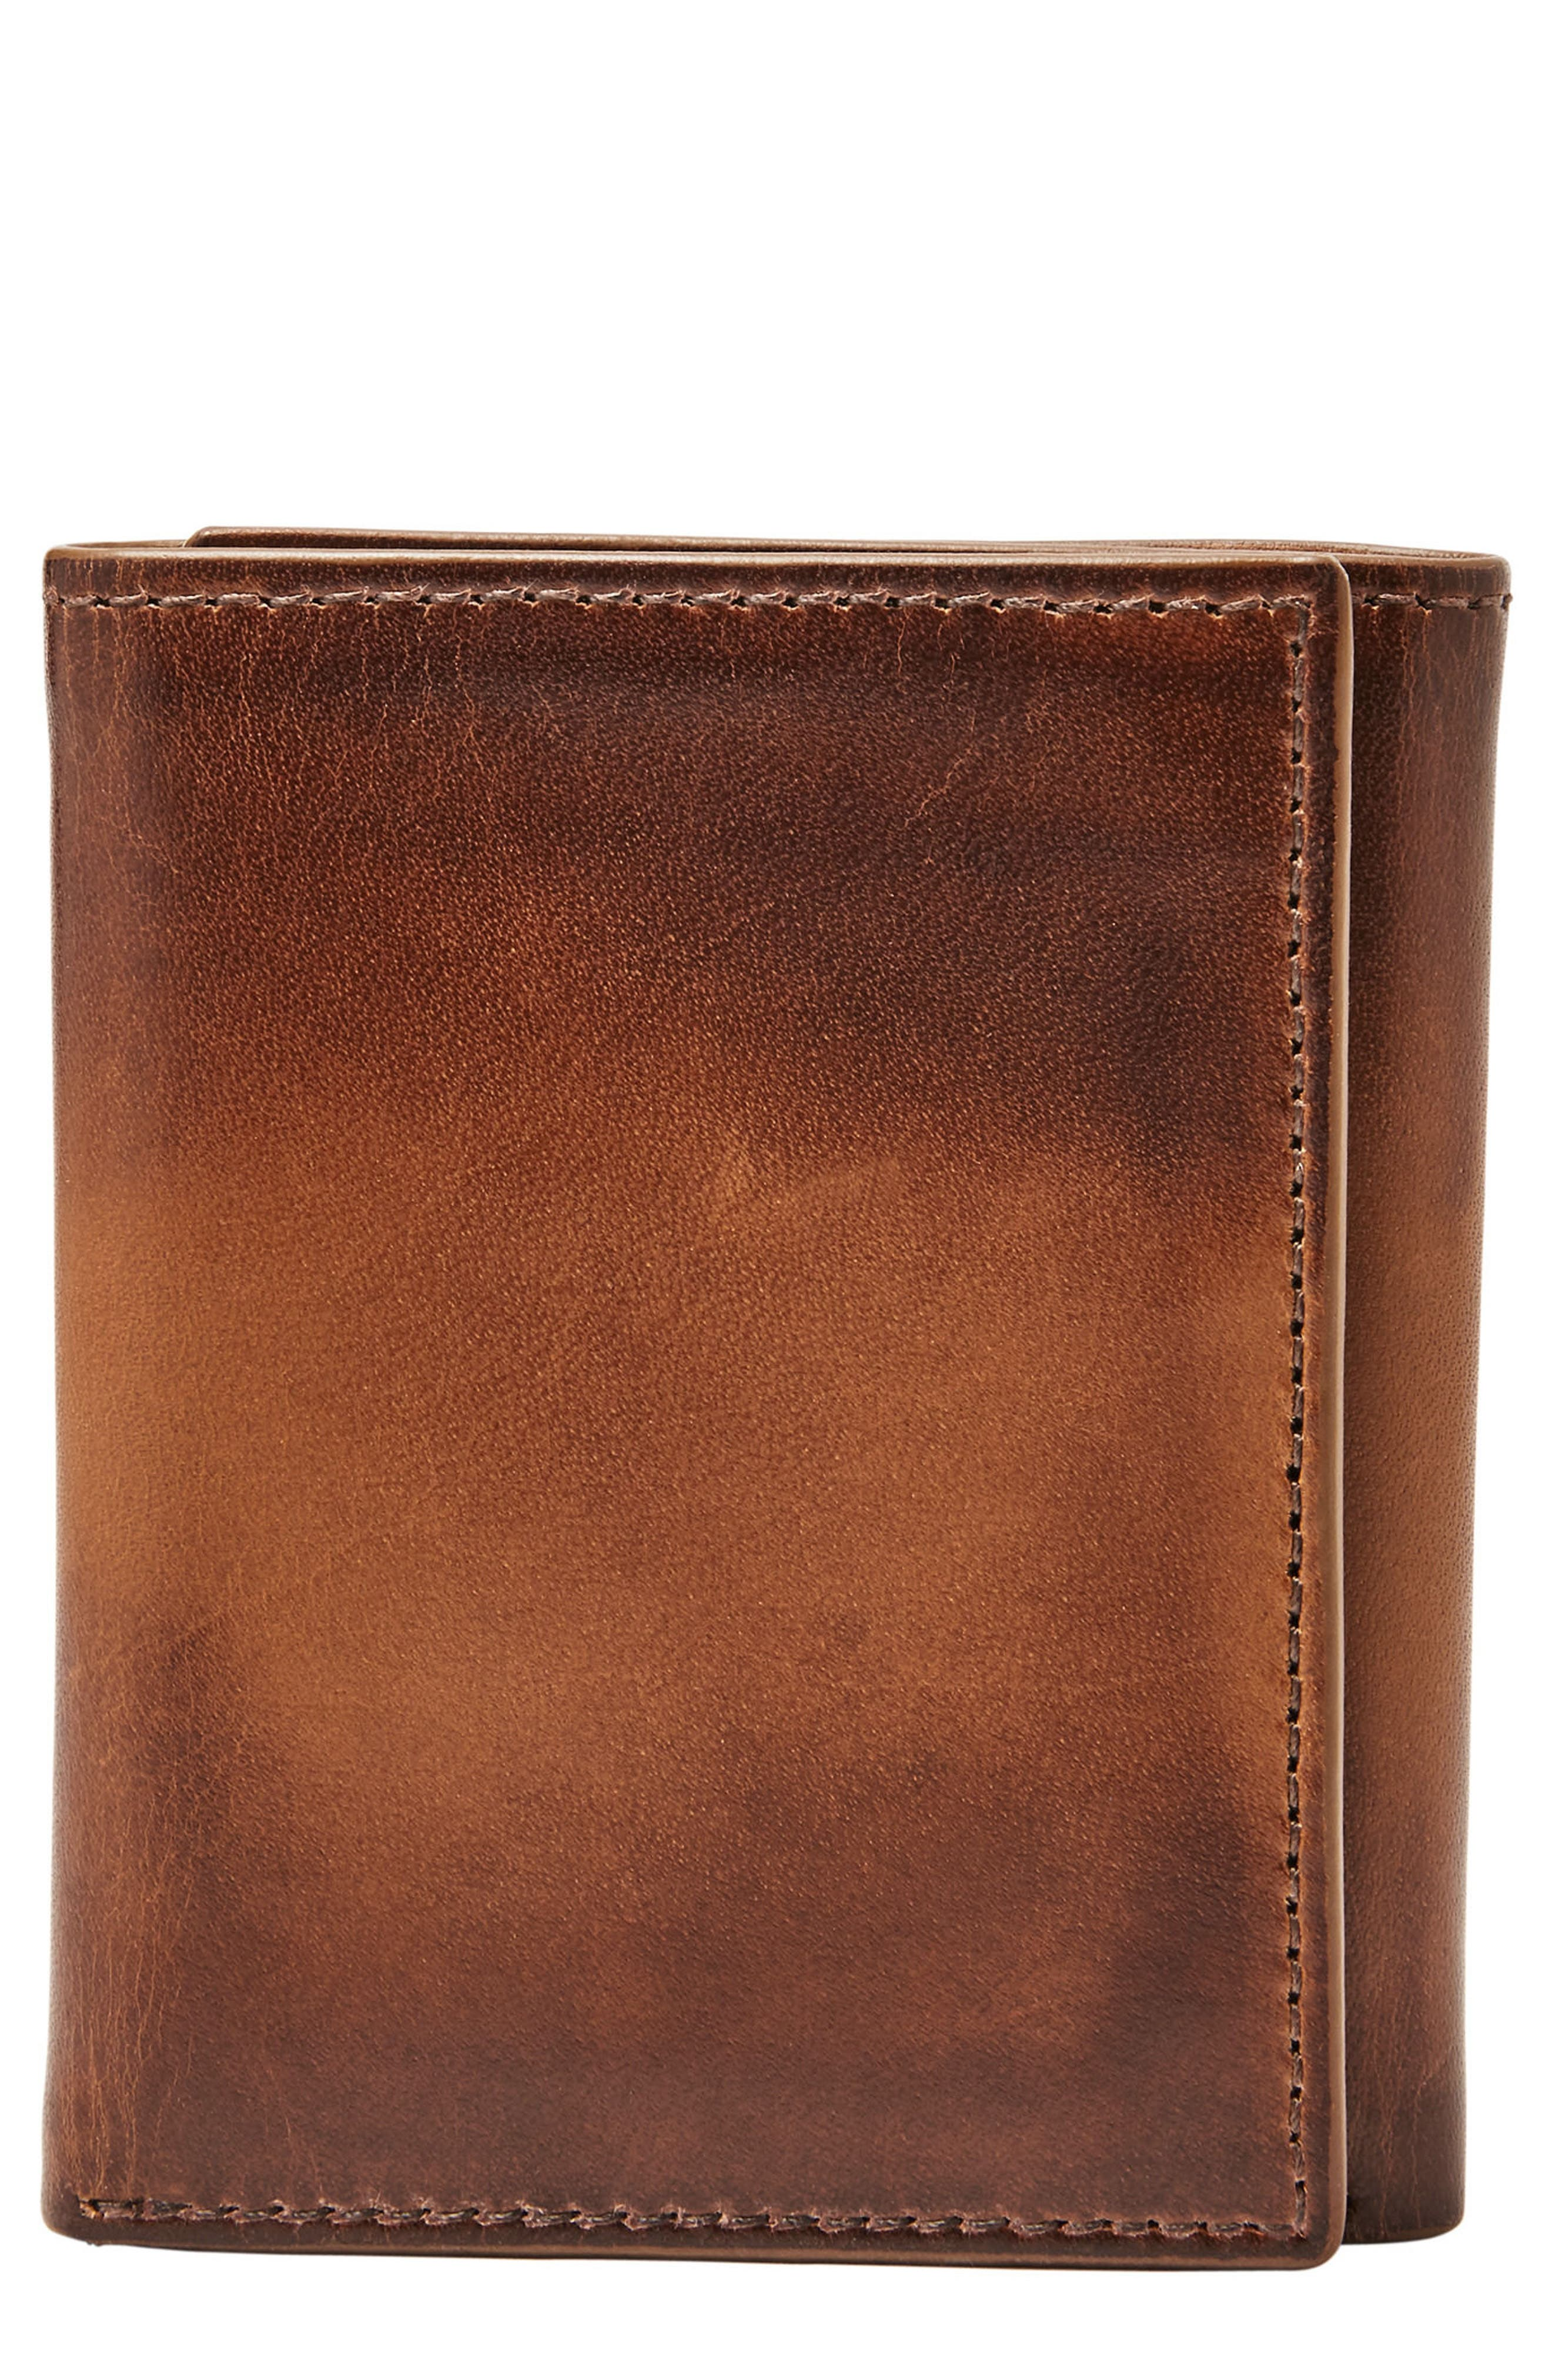 Alternate Image 1 Selected - Fossil Paul Leather Wallet